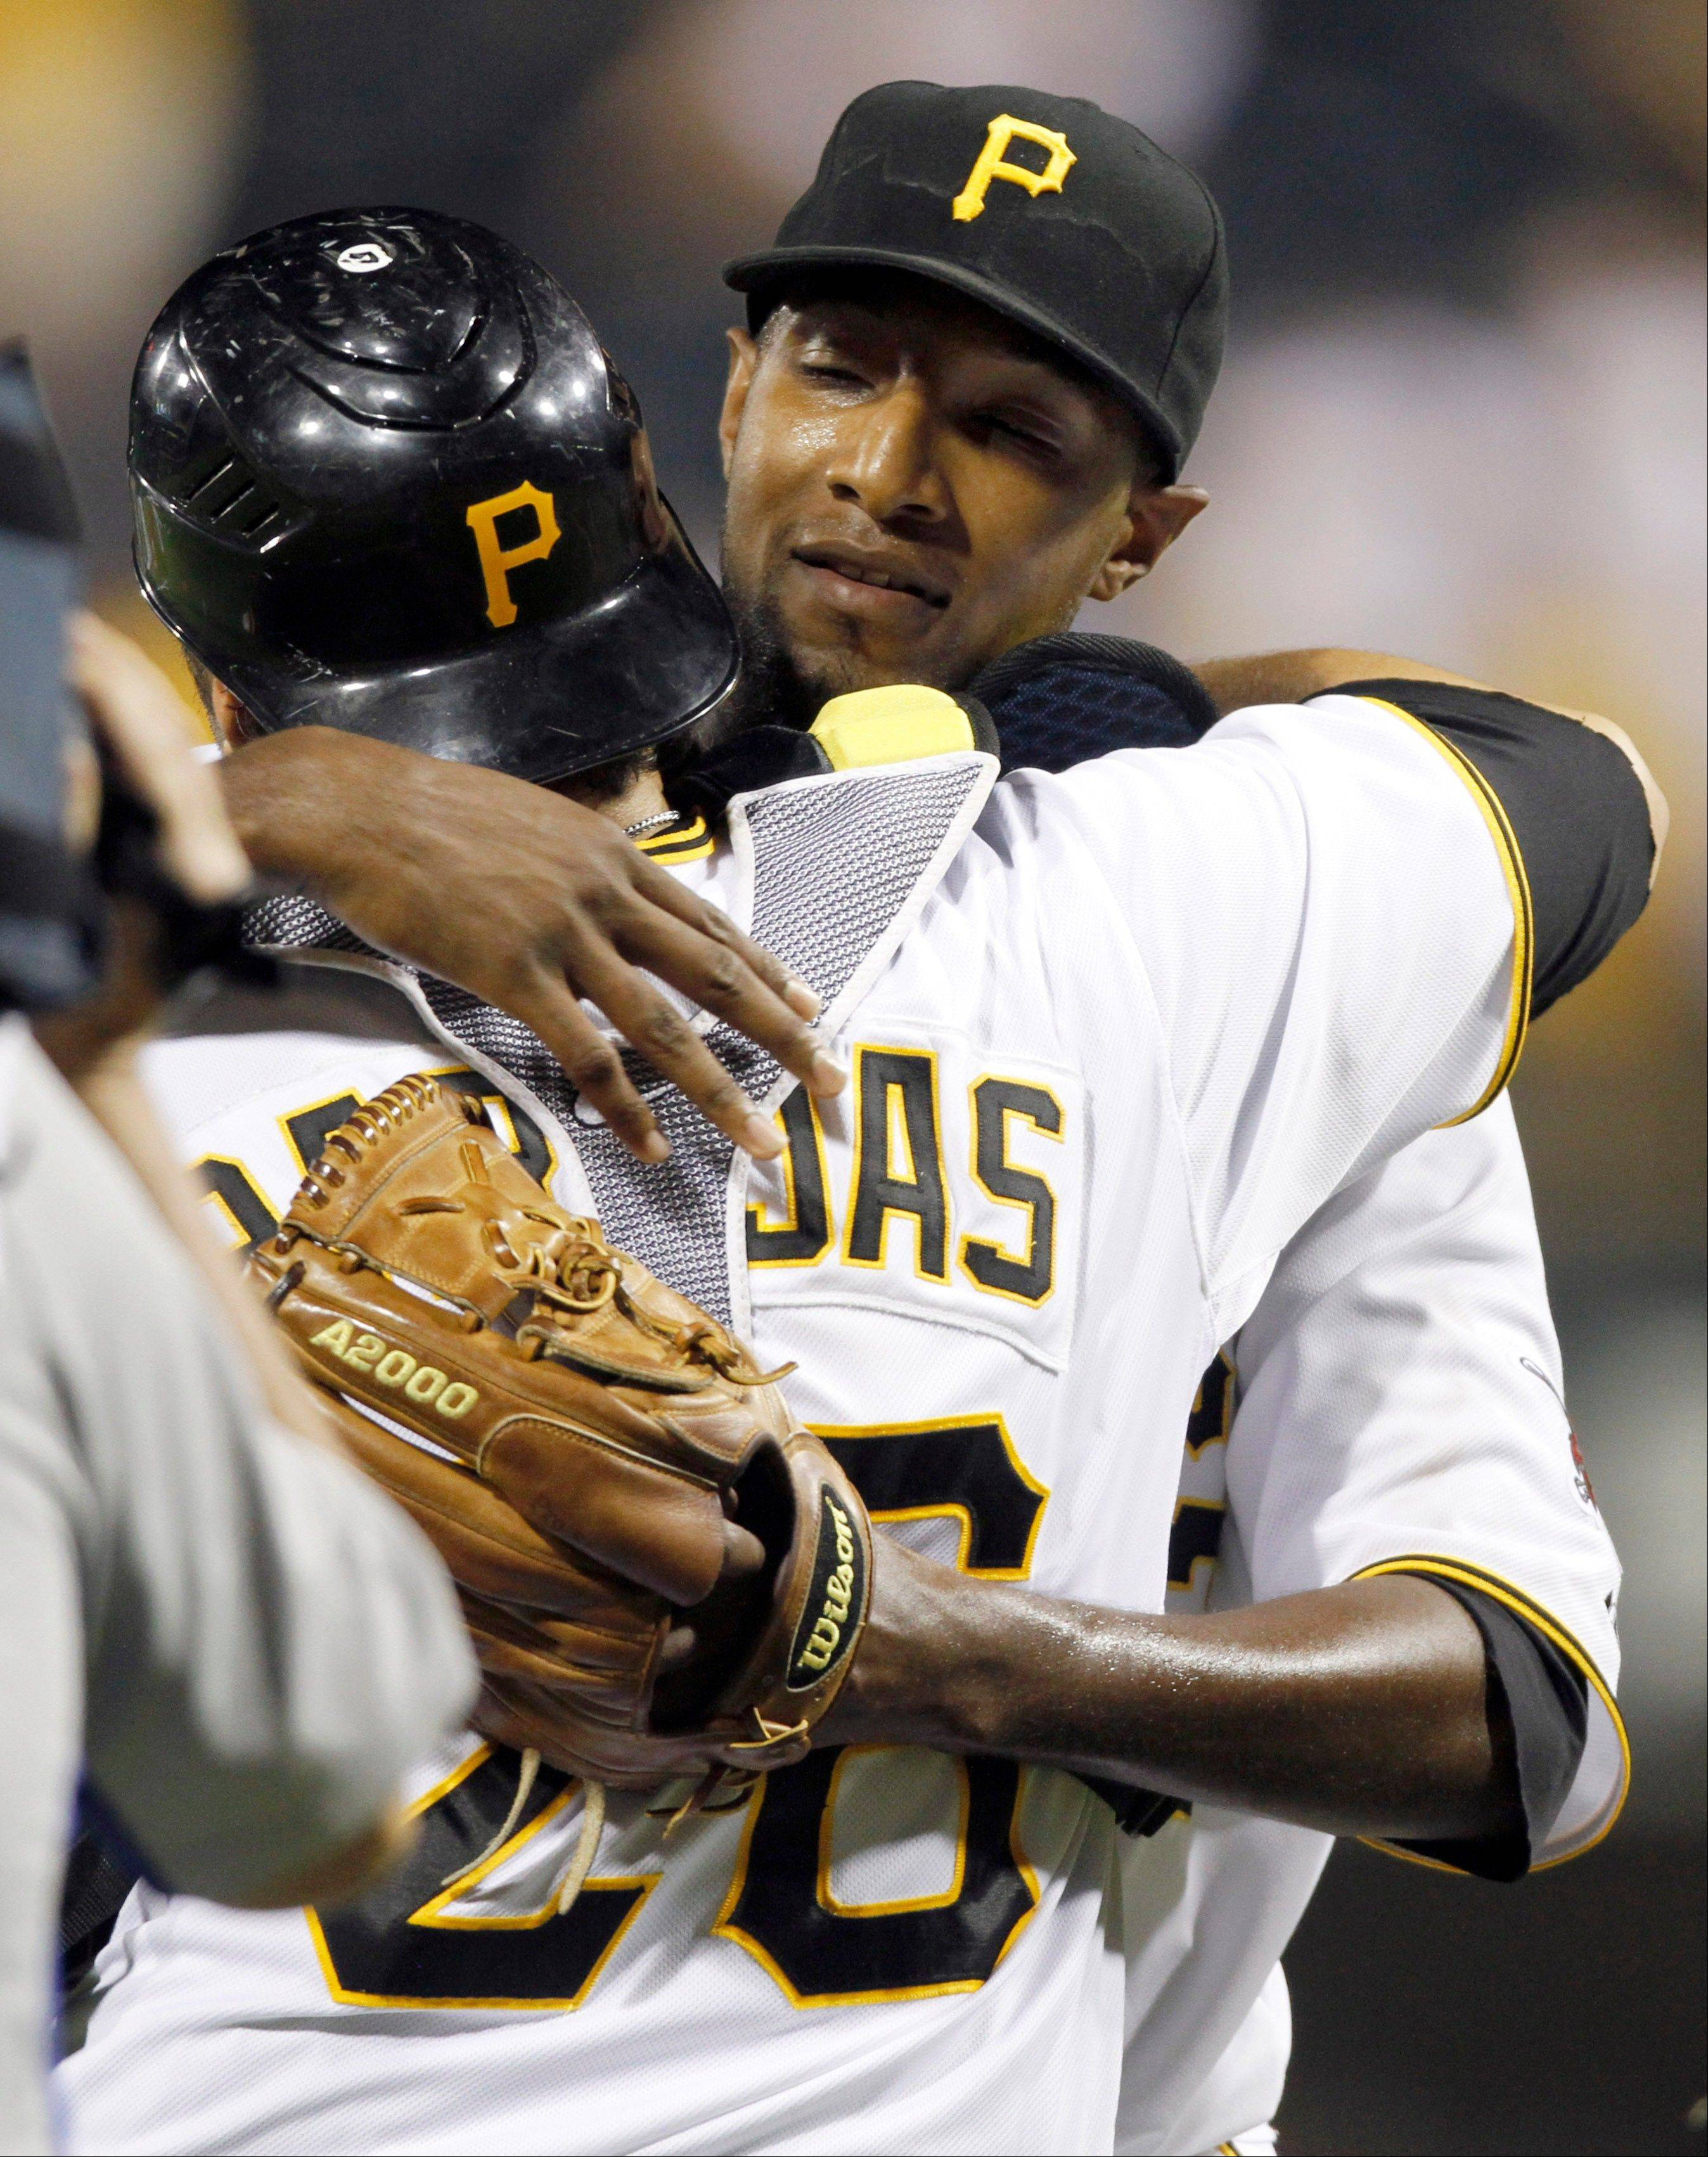 Pittsburgh Pirates starter James McDonald, right, hugs catcher Rod Barajas after pitching a complete game and defeating the Minnesota Twins 9-1.